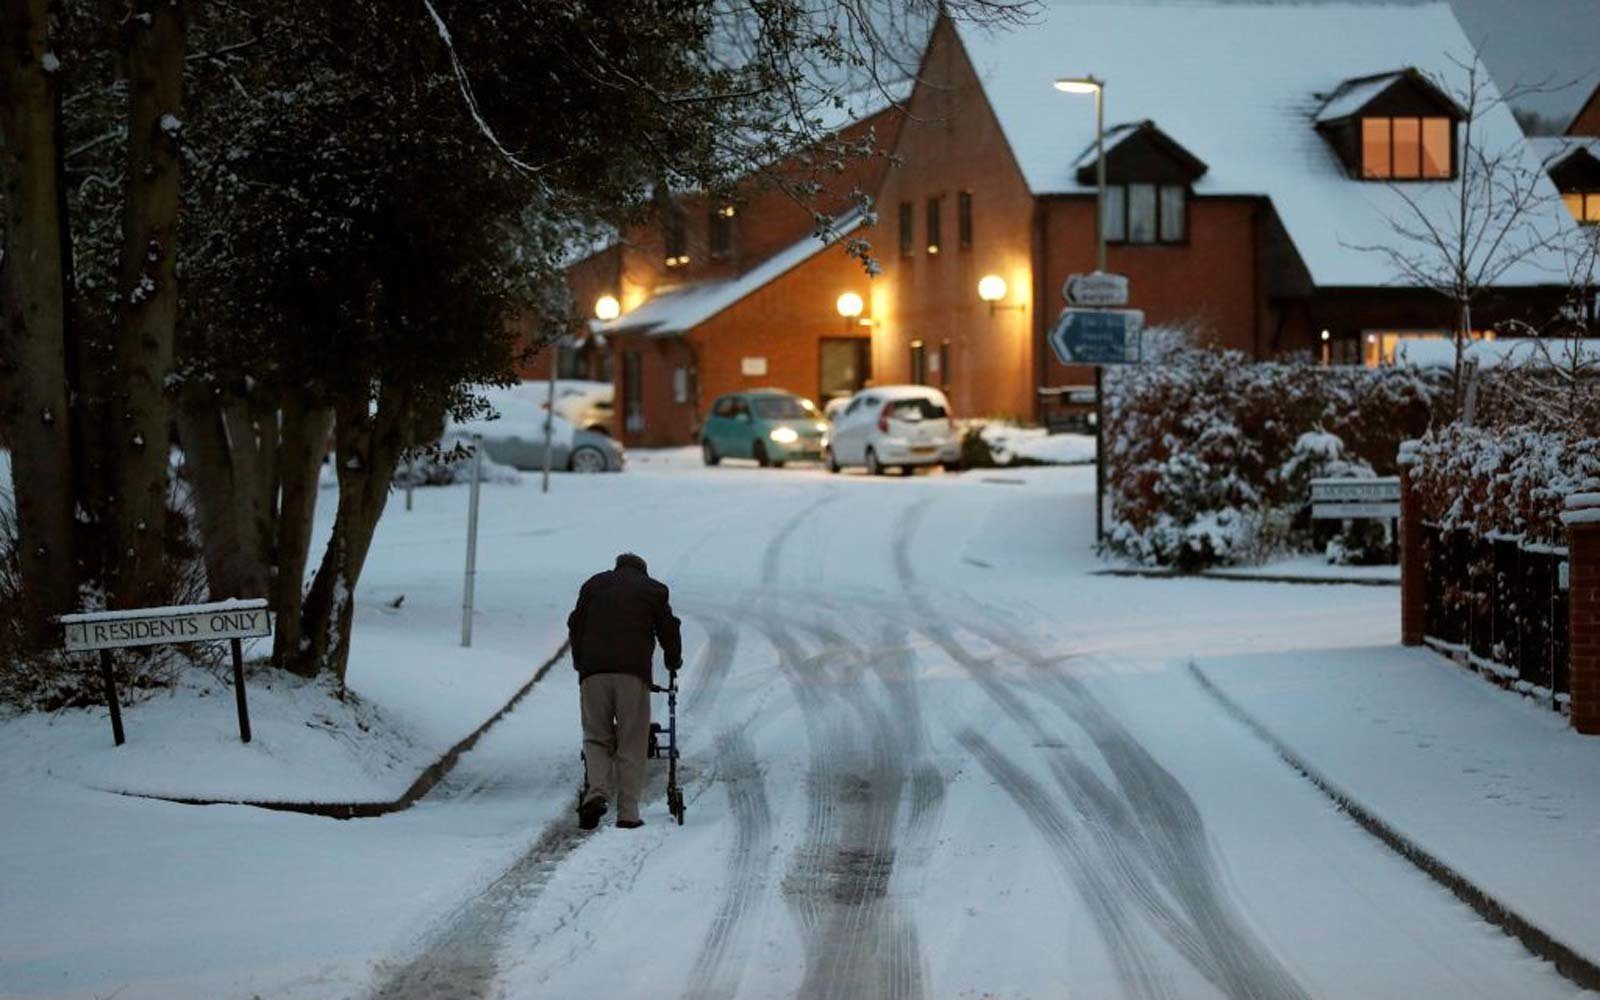 An elderly resident makes his way up a snow covered road in Hartley Wintney, in Hampshire, 40 miles west of London